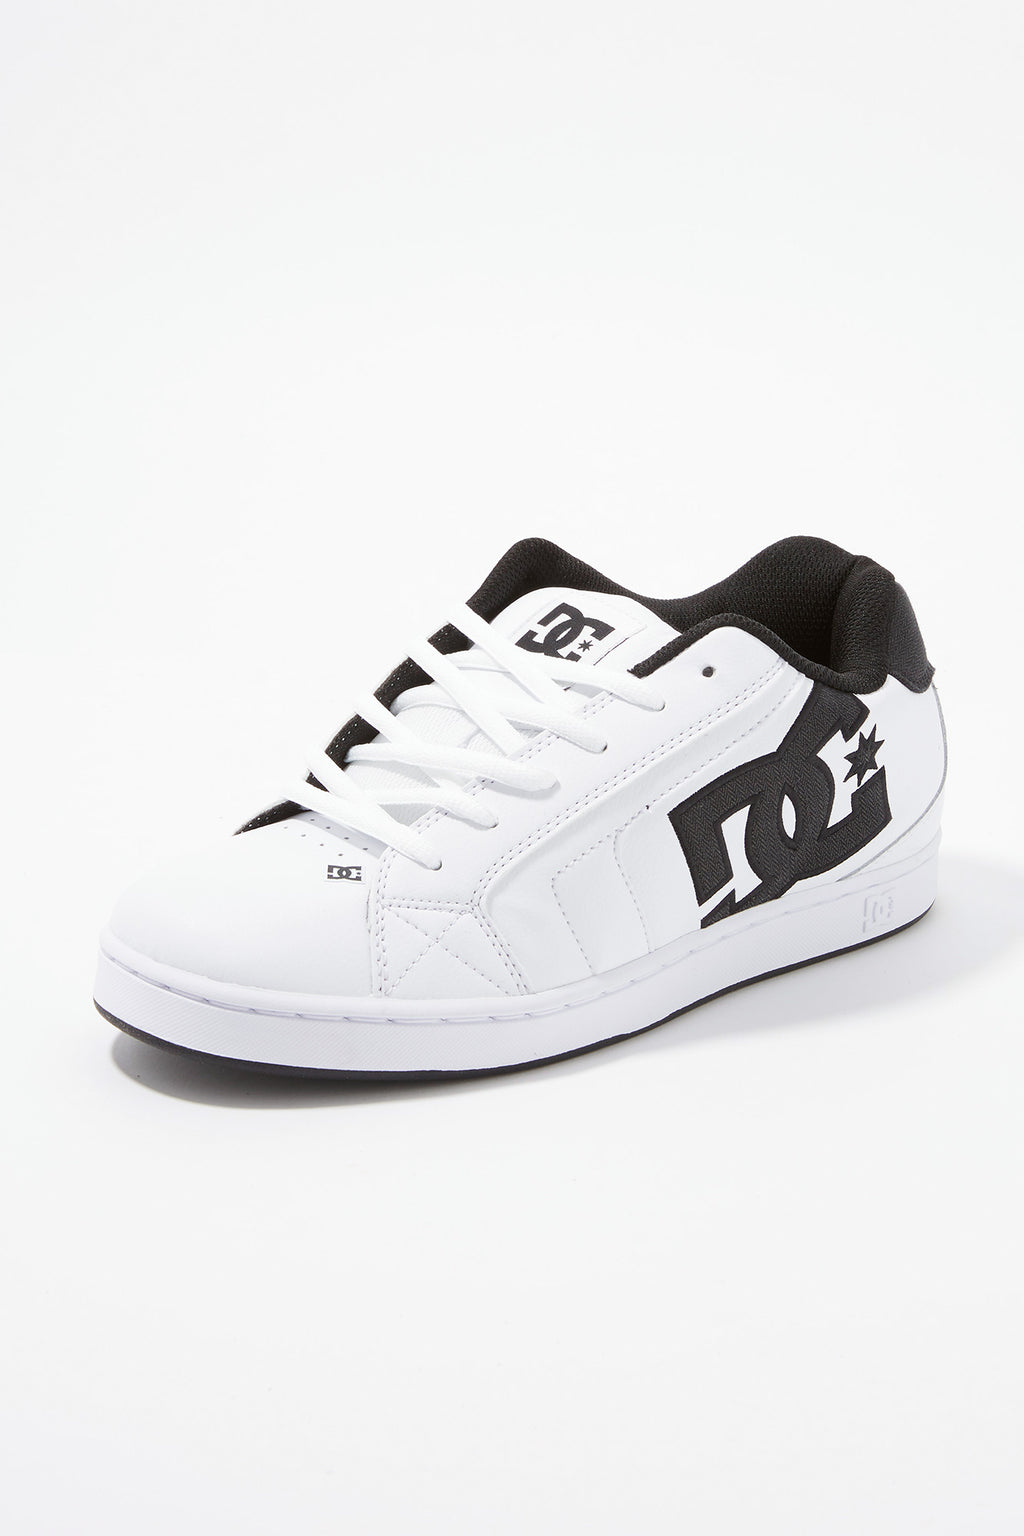 DC Mens Net SE Skate Shoes